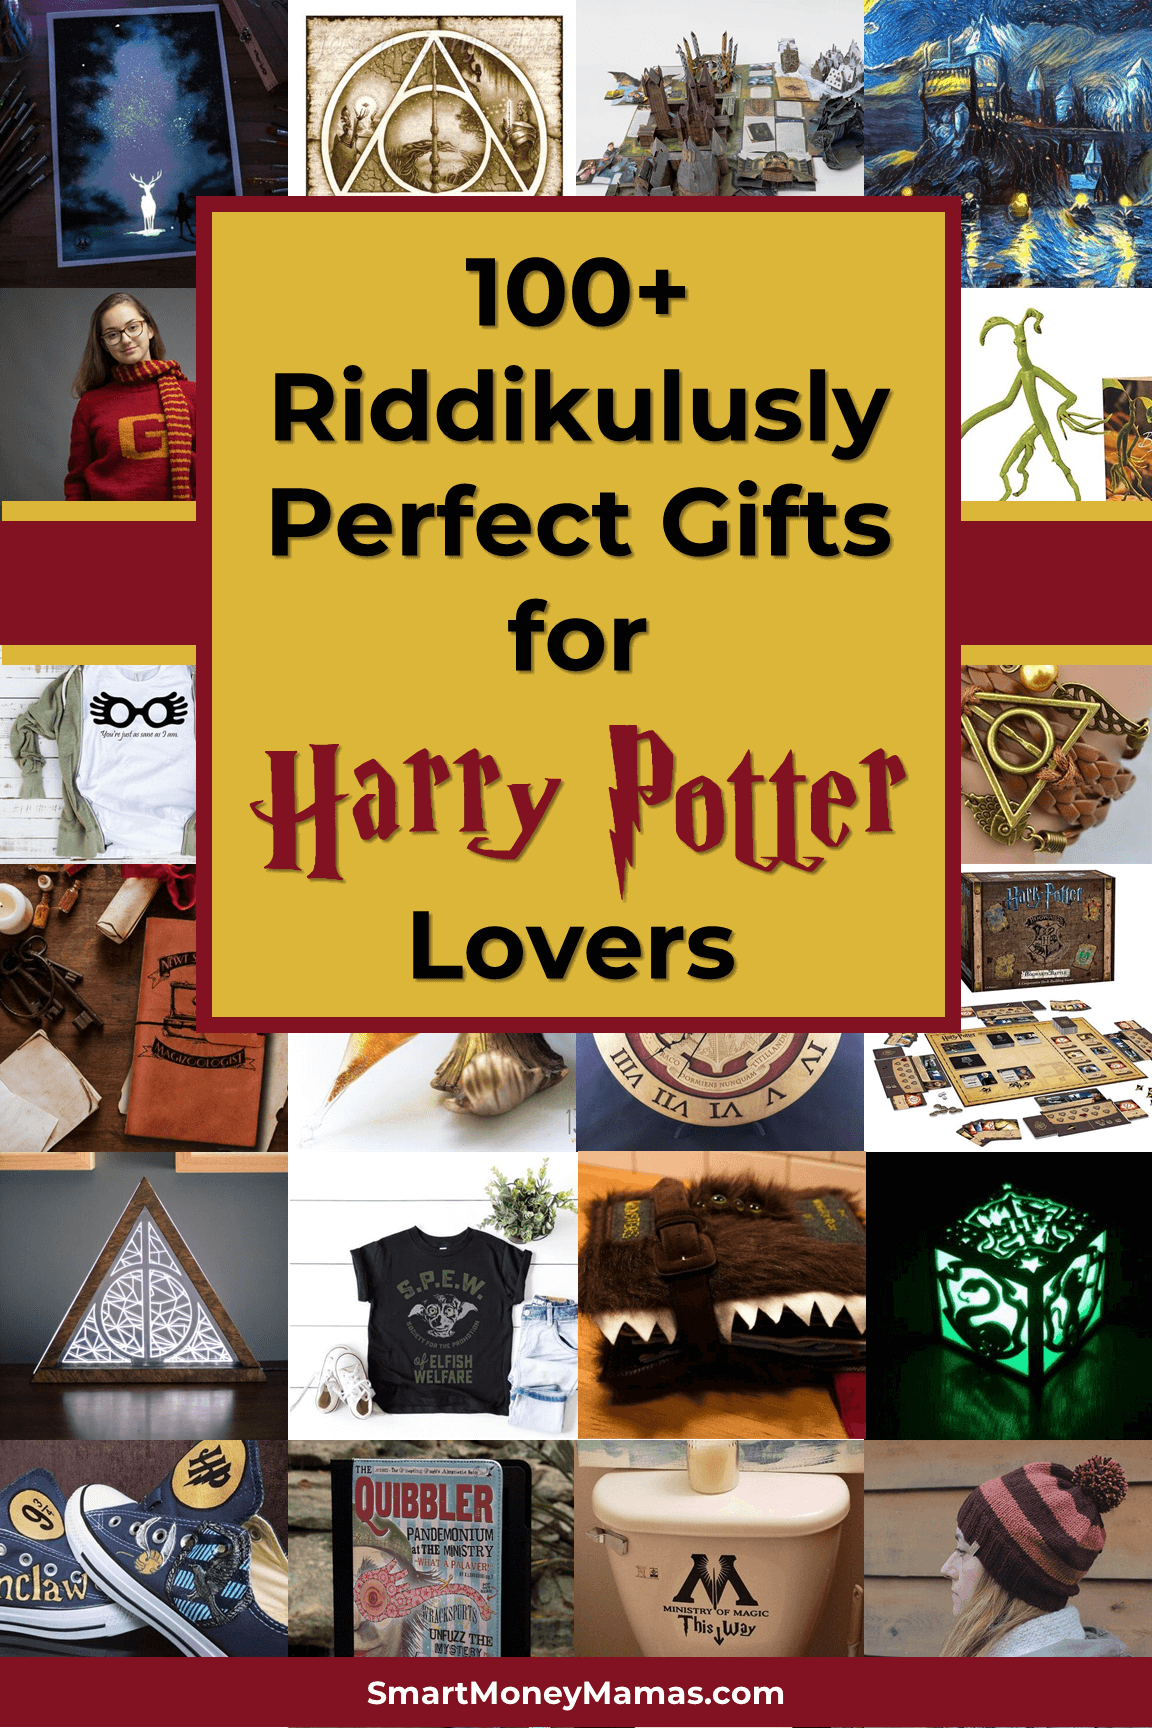 This list is amazing! Best Harry Potter gifts for any witch or wizard | Harry Potter birthday gifts, Christmas gifts, or wedding gifts #harrypotter #giftguide #wizard #hogwarts